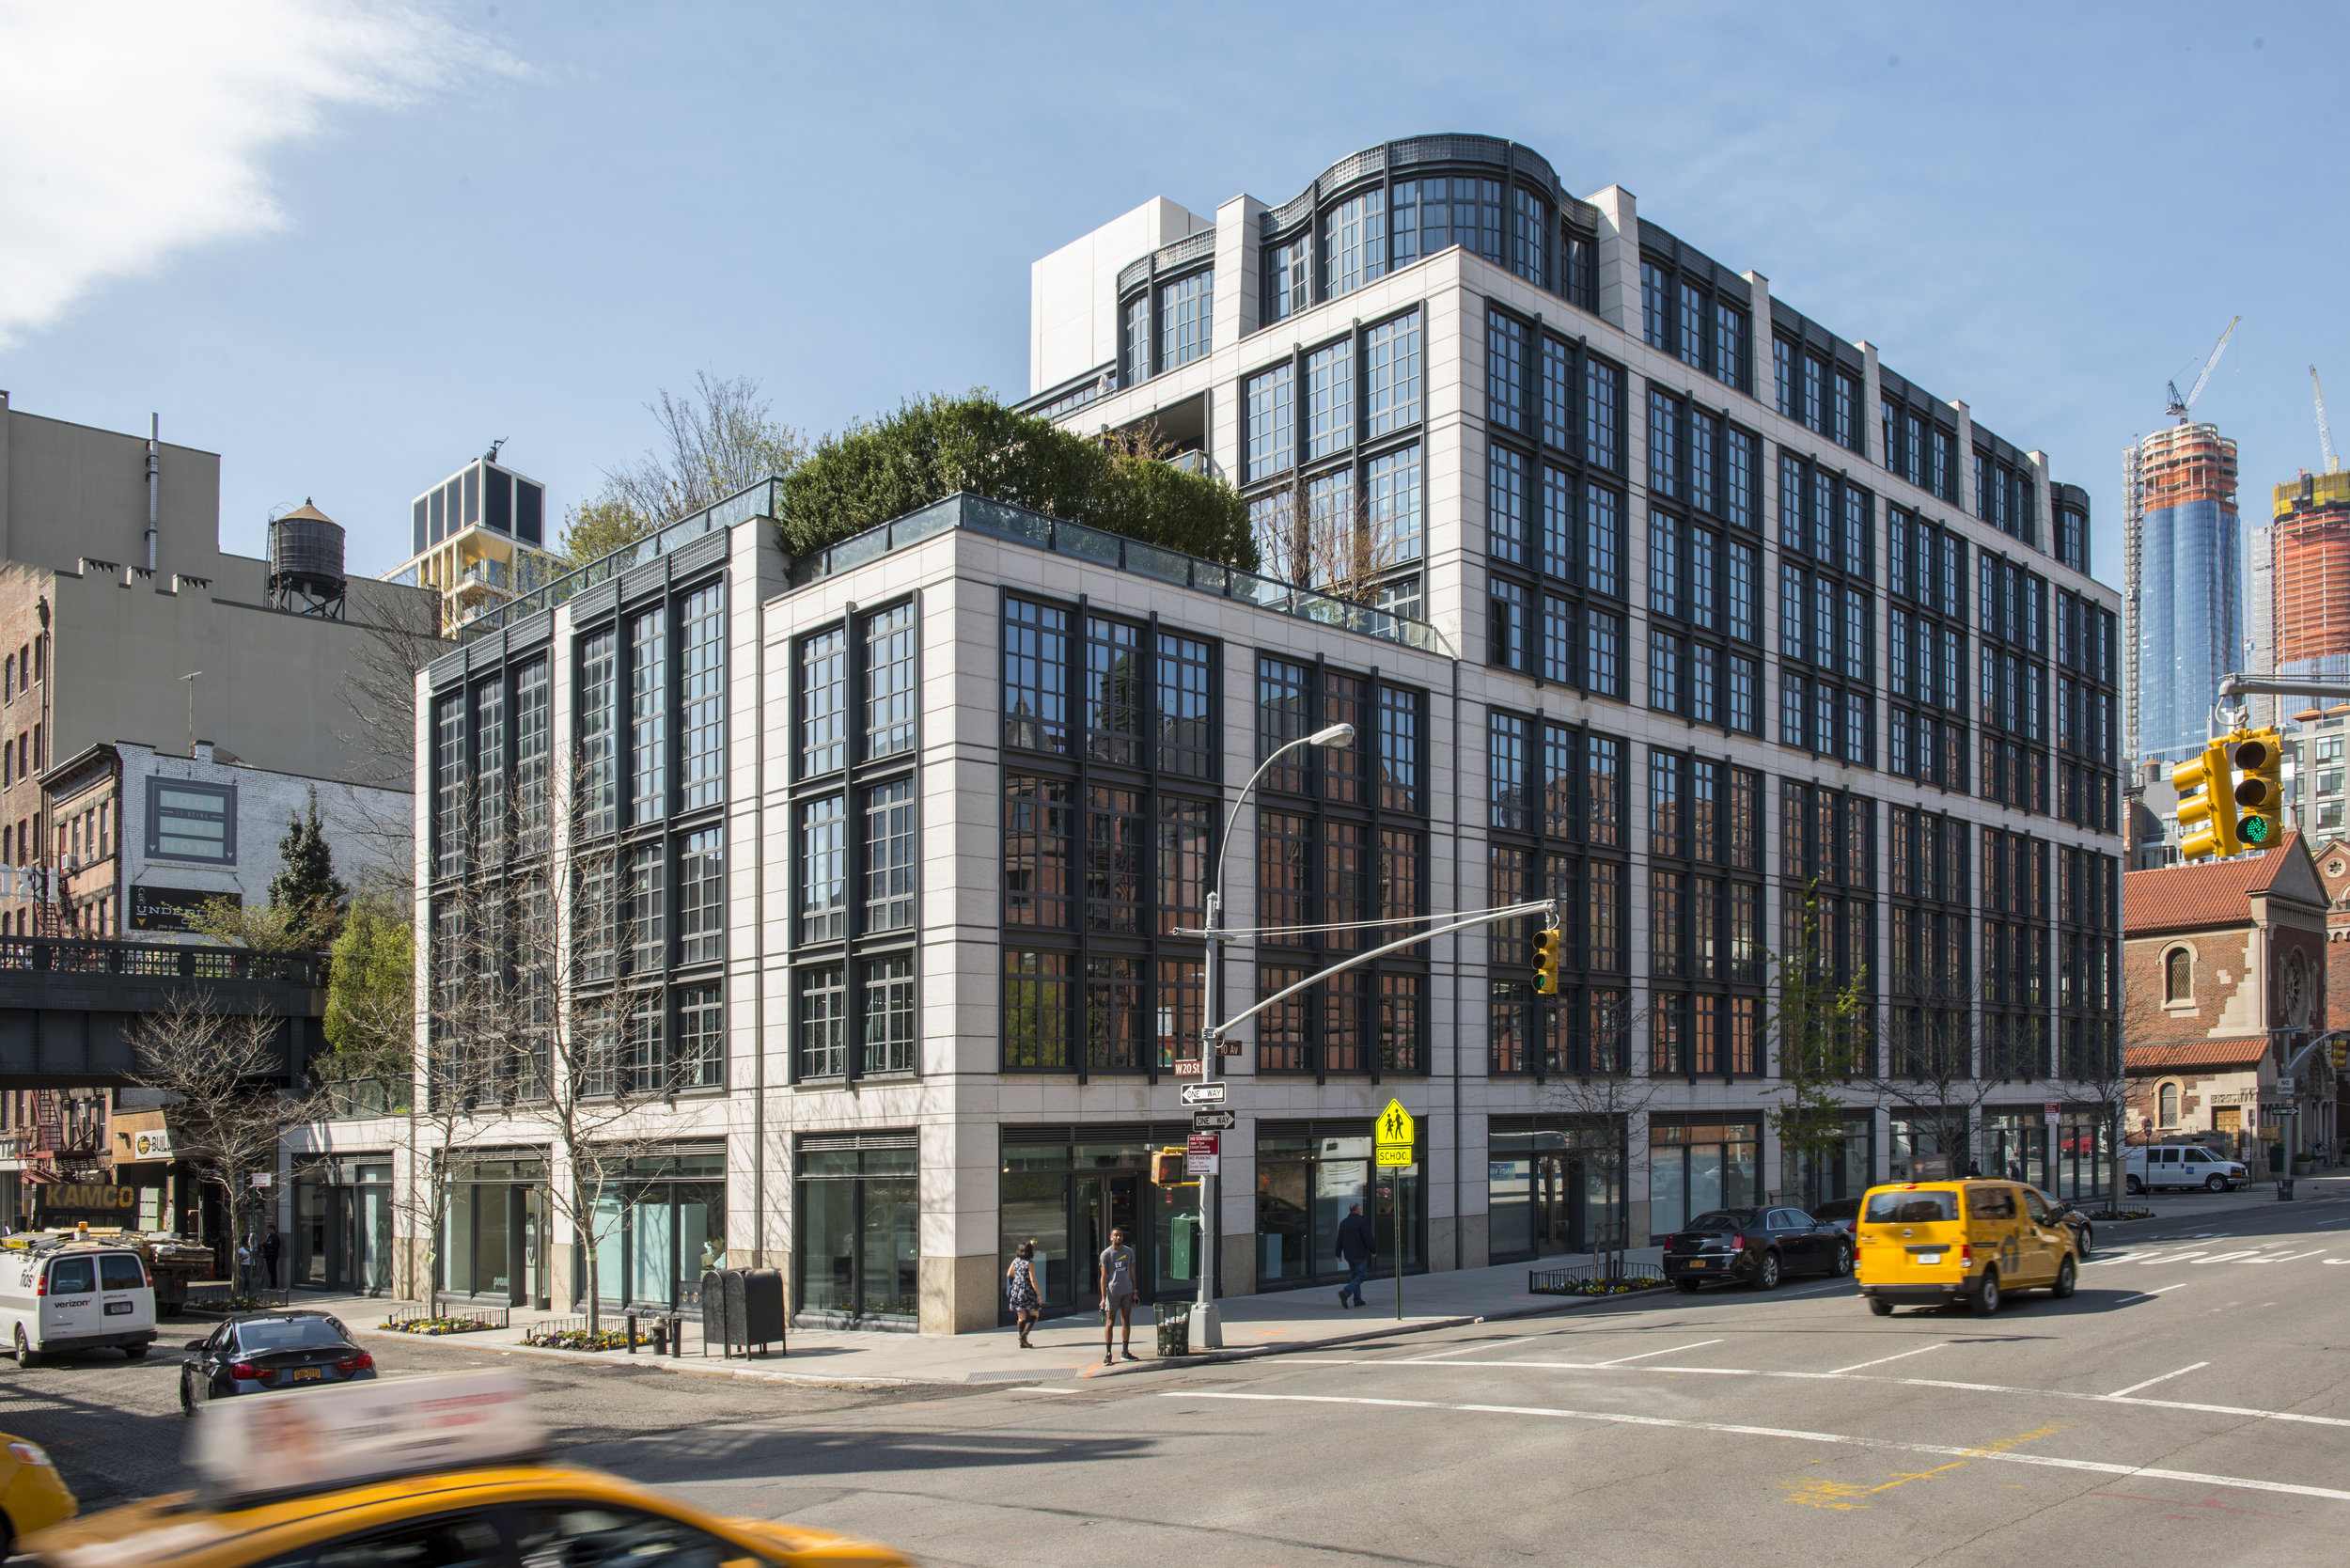 500West21stStreet5D-ChelseaNewYork_Jessica_Cohen_DouglasElliman_Photography_63594094_high_res.jpg